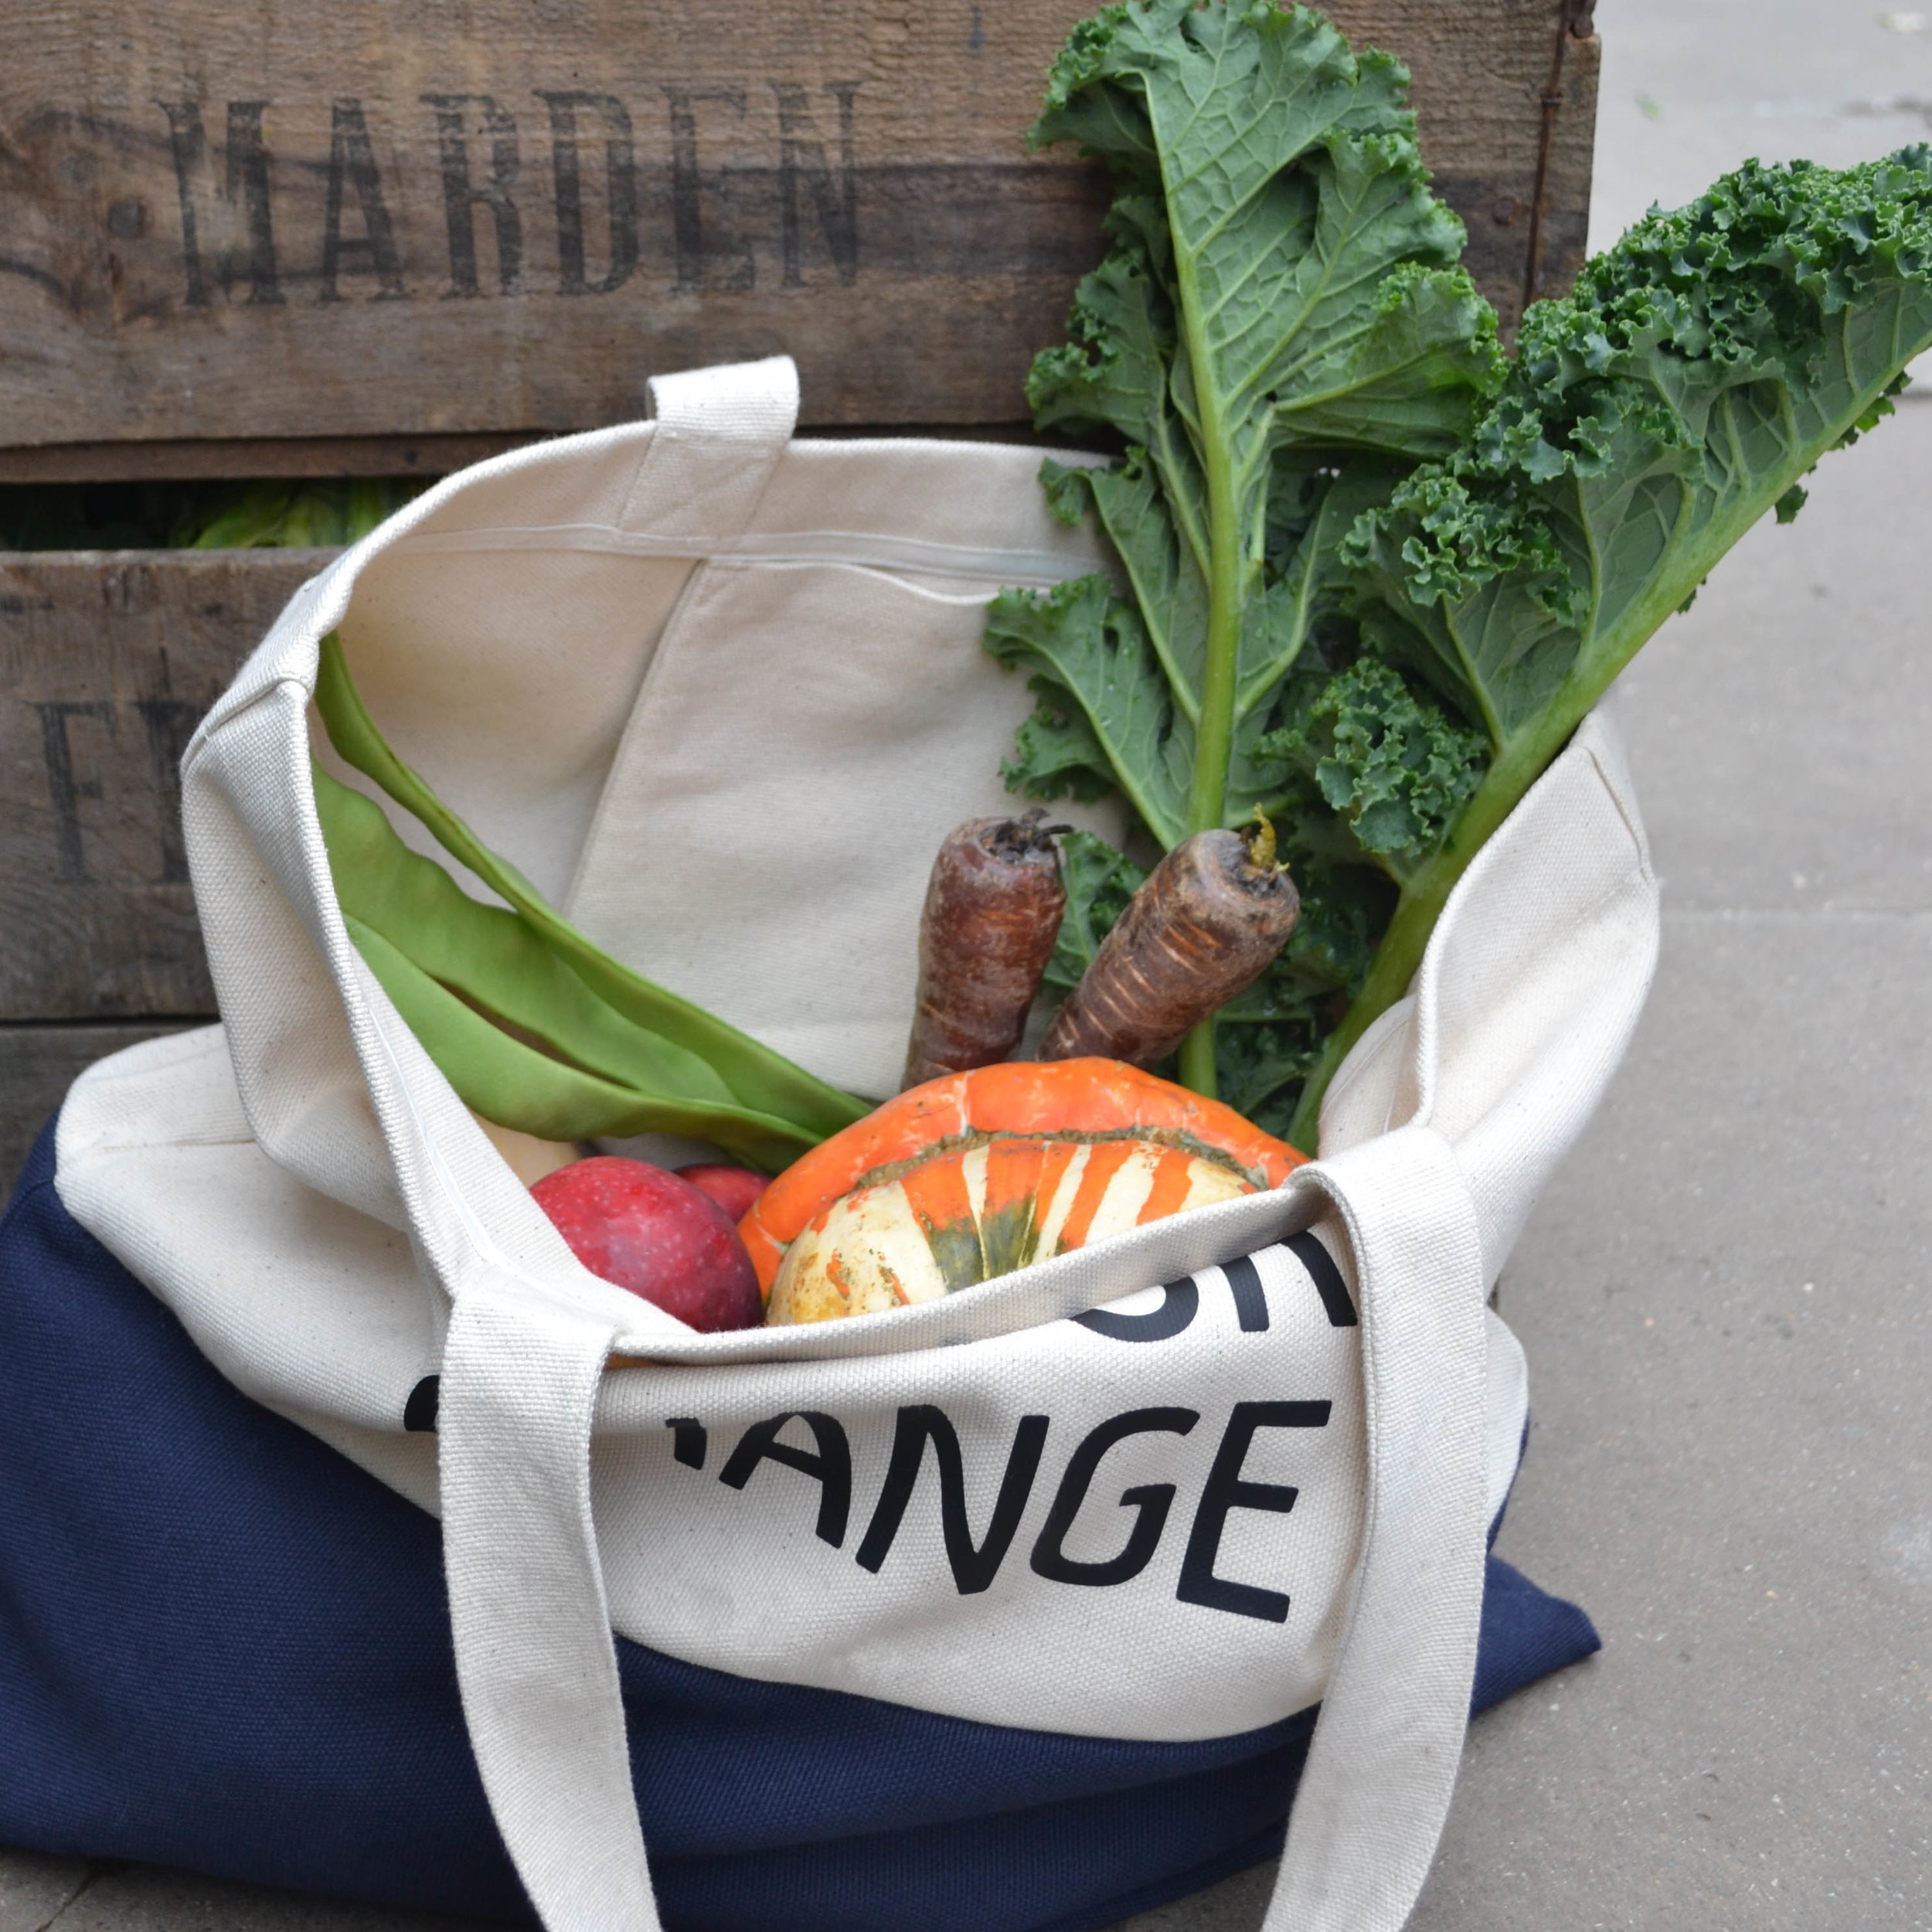 Bag For Change and with zero waste shopping